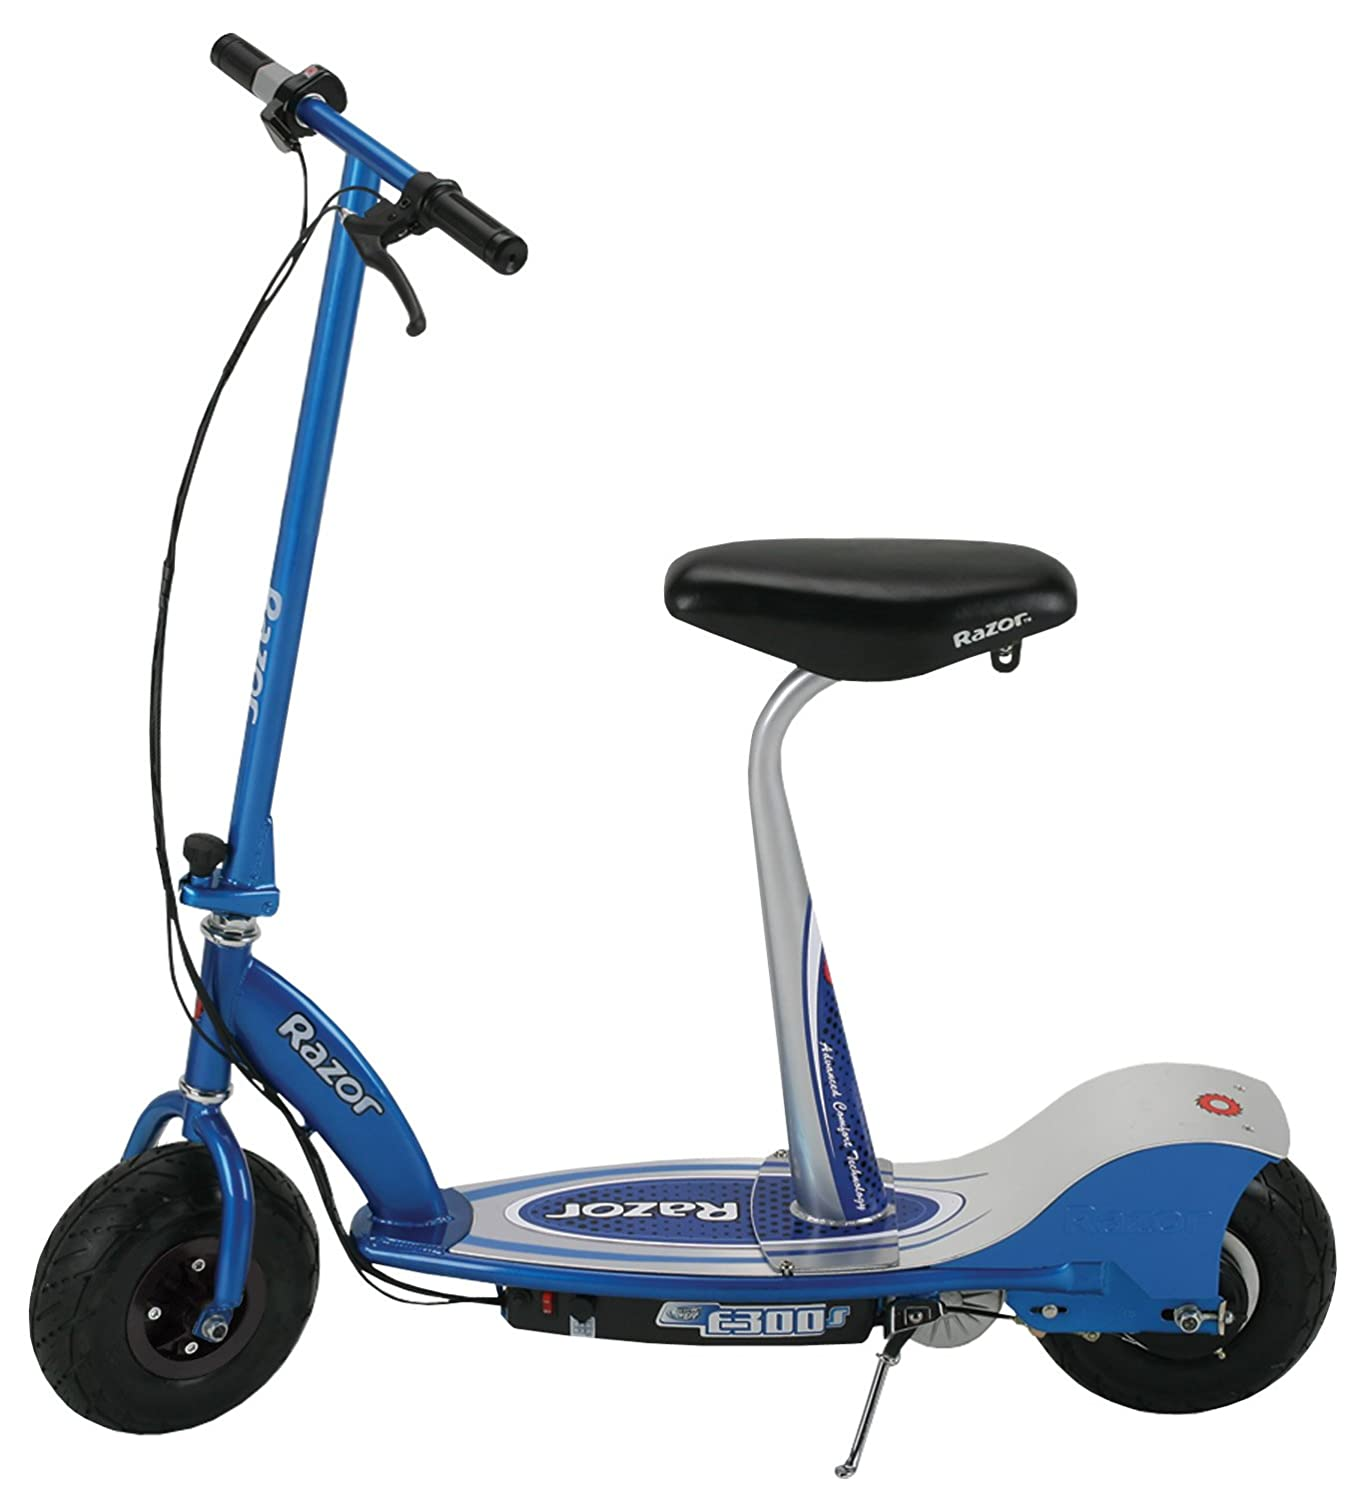 Razor E300 And E300 S Seated Electric Scooters Reviews